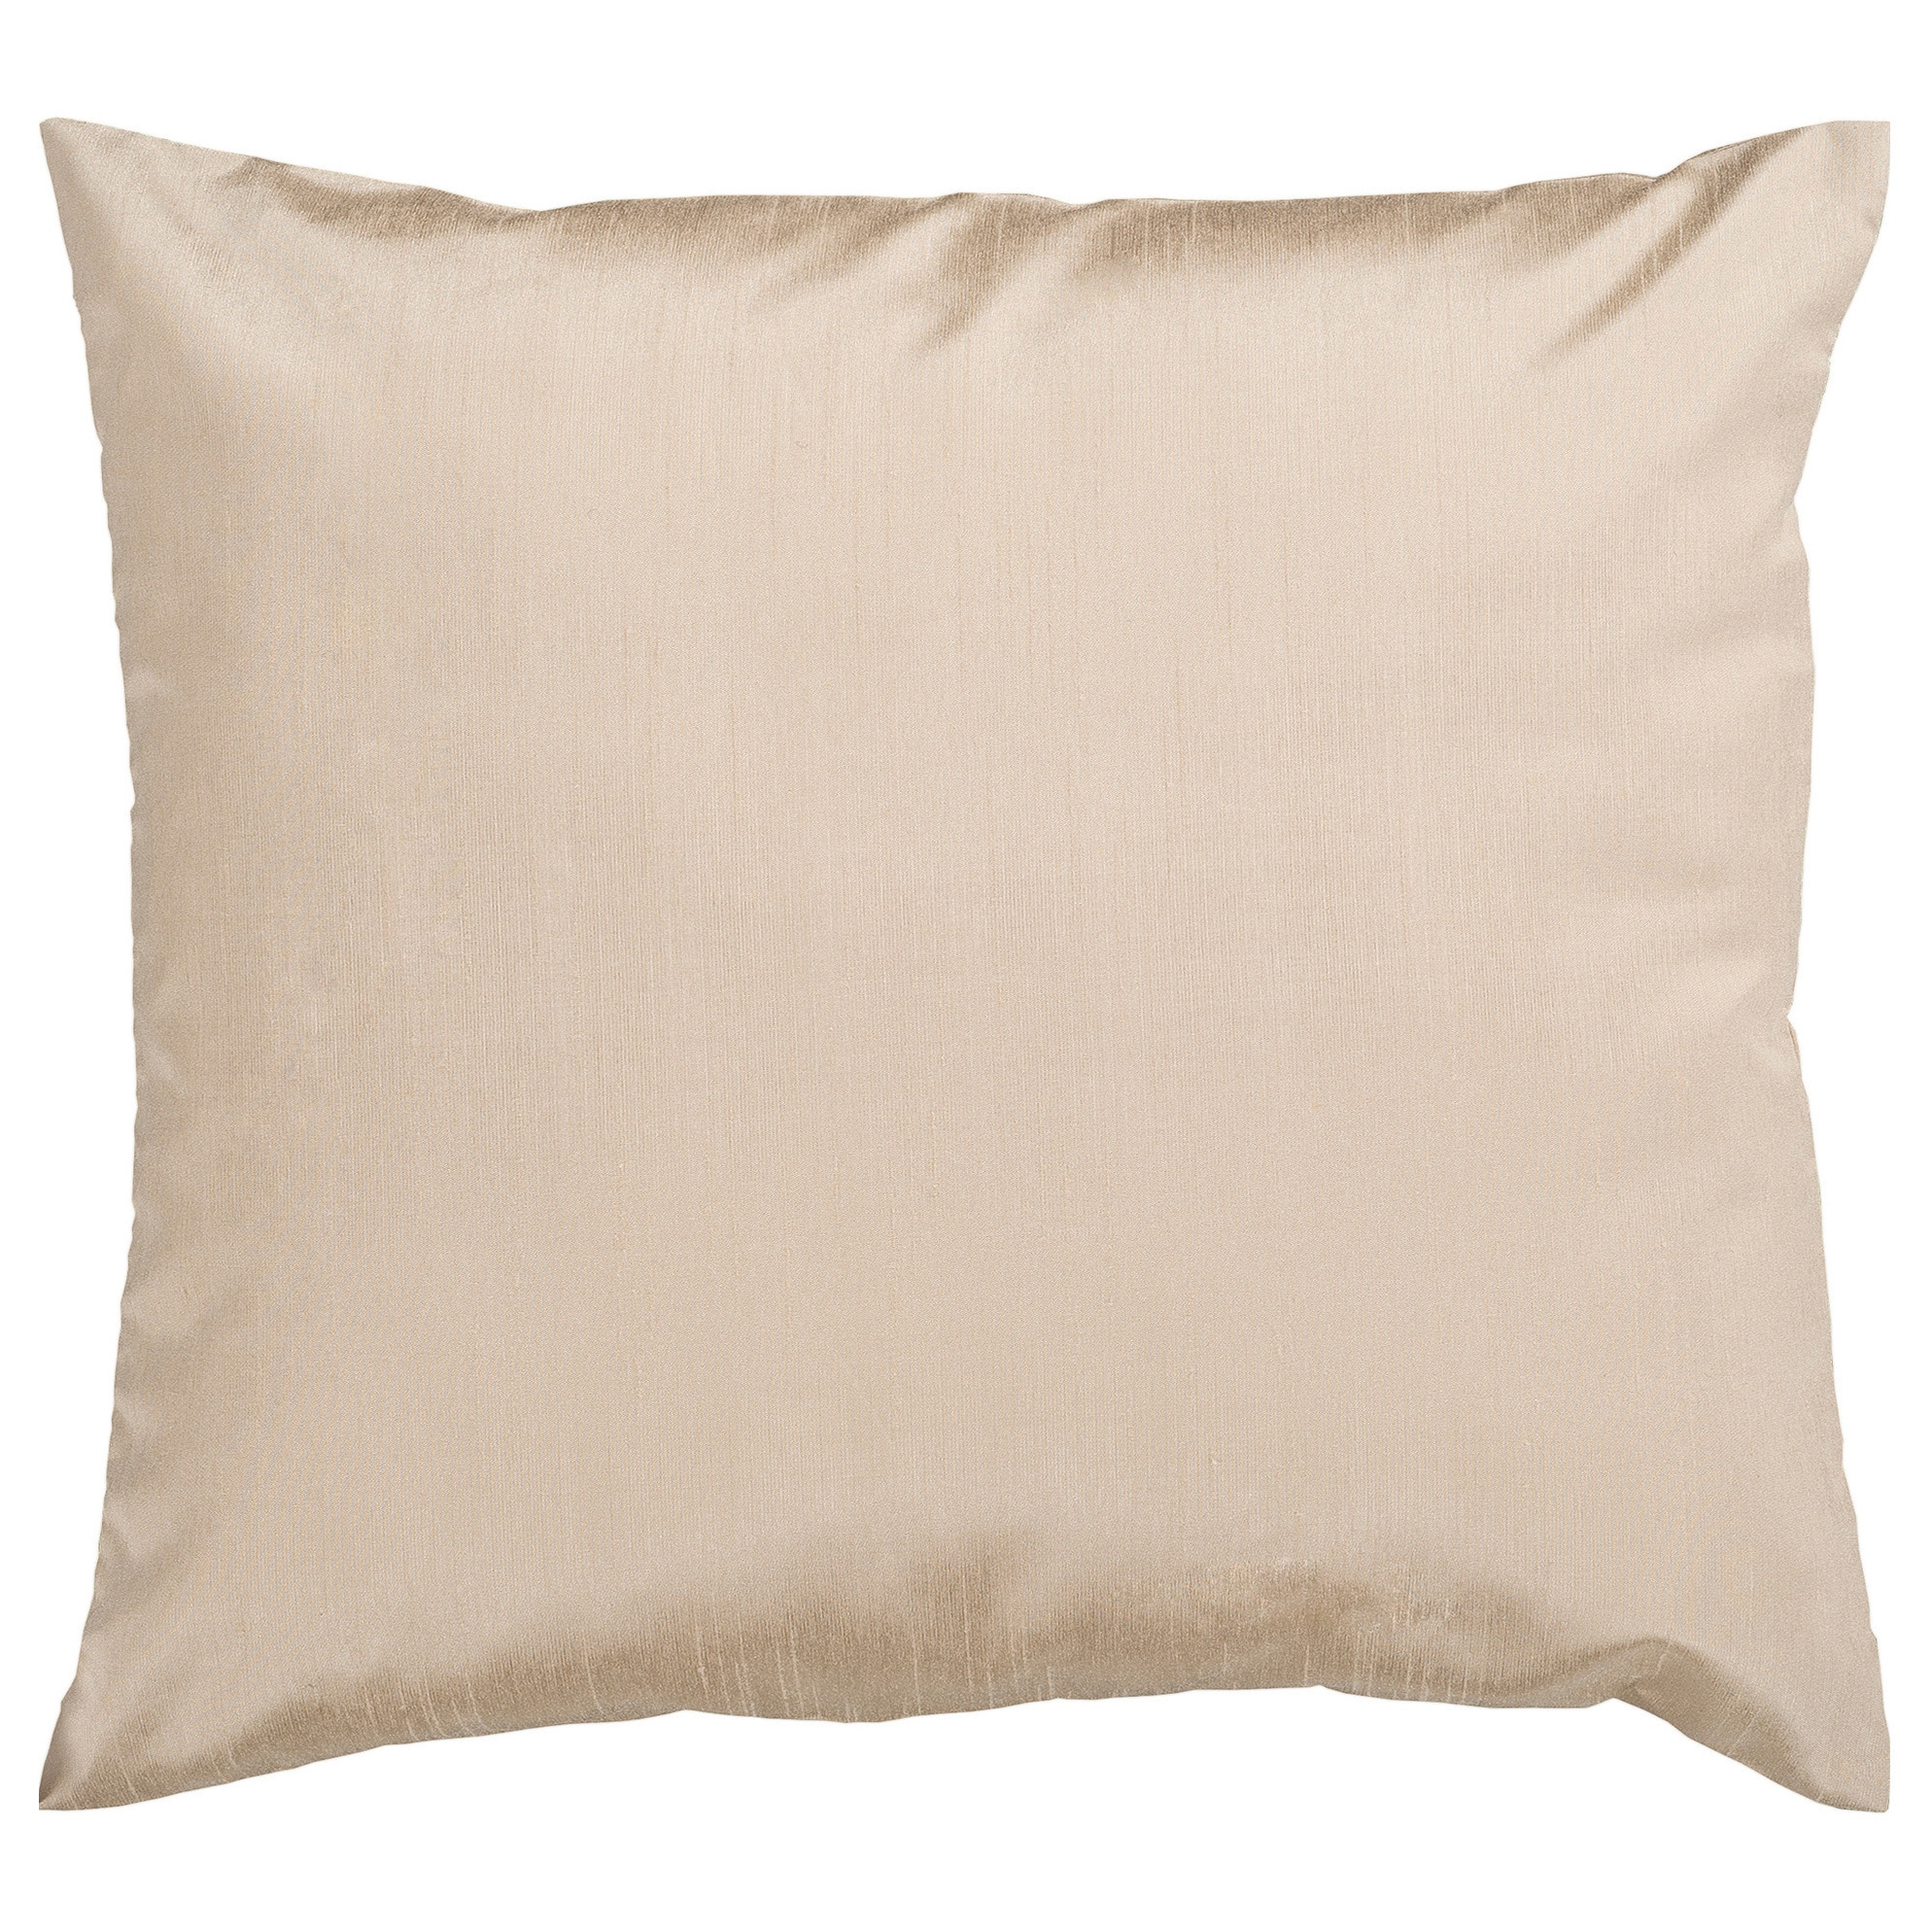 Decorative Chic Removable Cover 17-inch Square Solid Throw Pillow ...